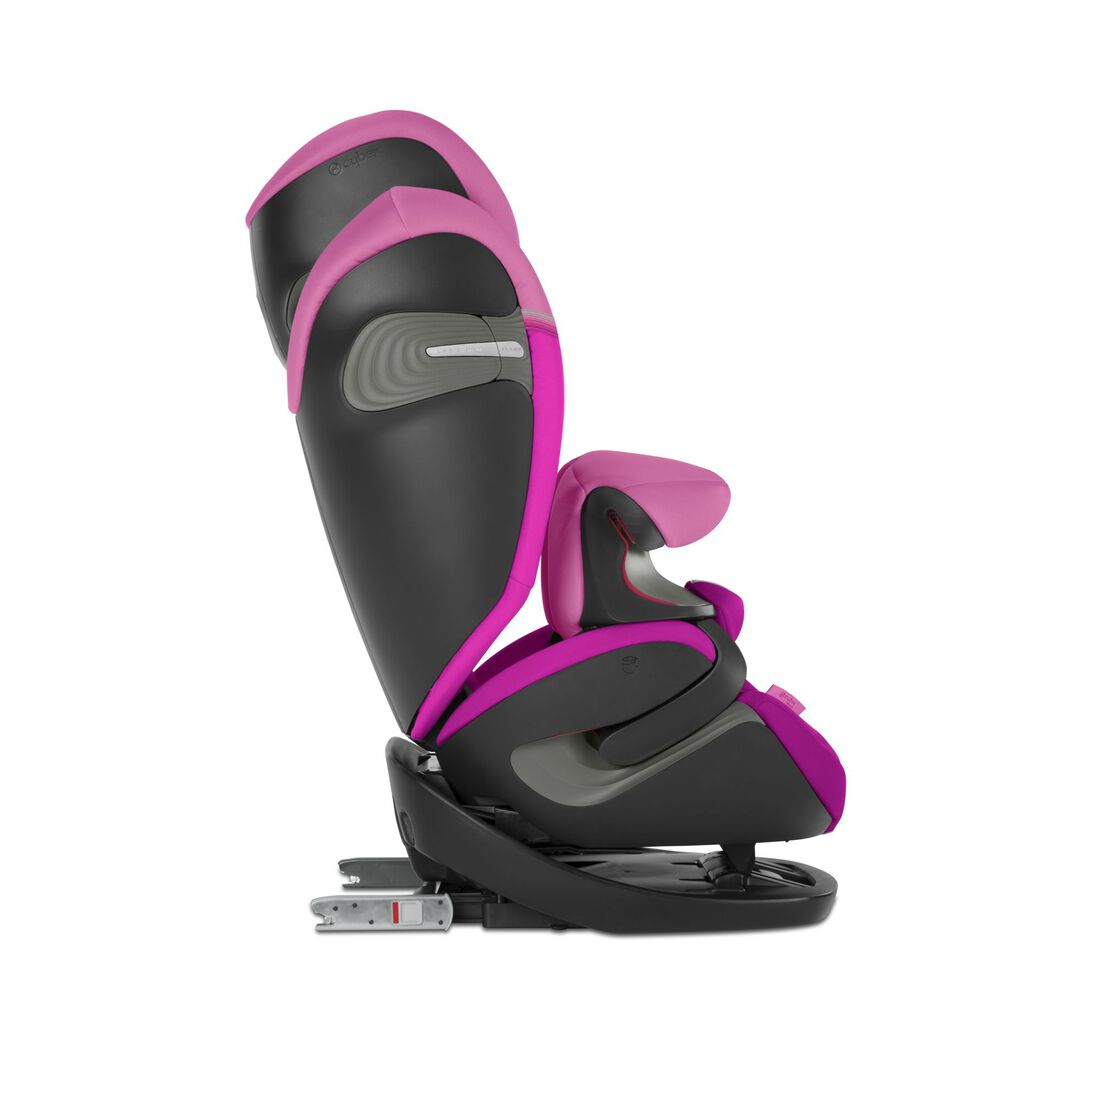 CYBEX Pallas S-fix - Magnolia Pink in Magnolia Pink large image number 3